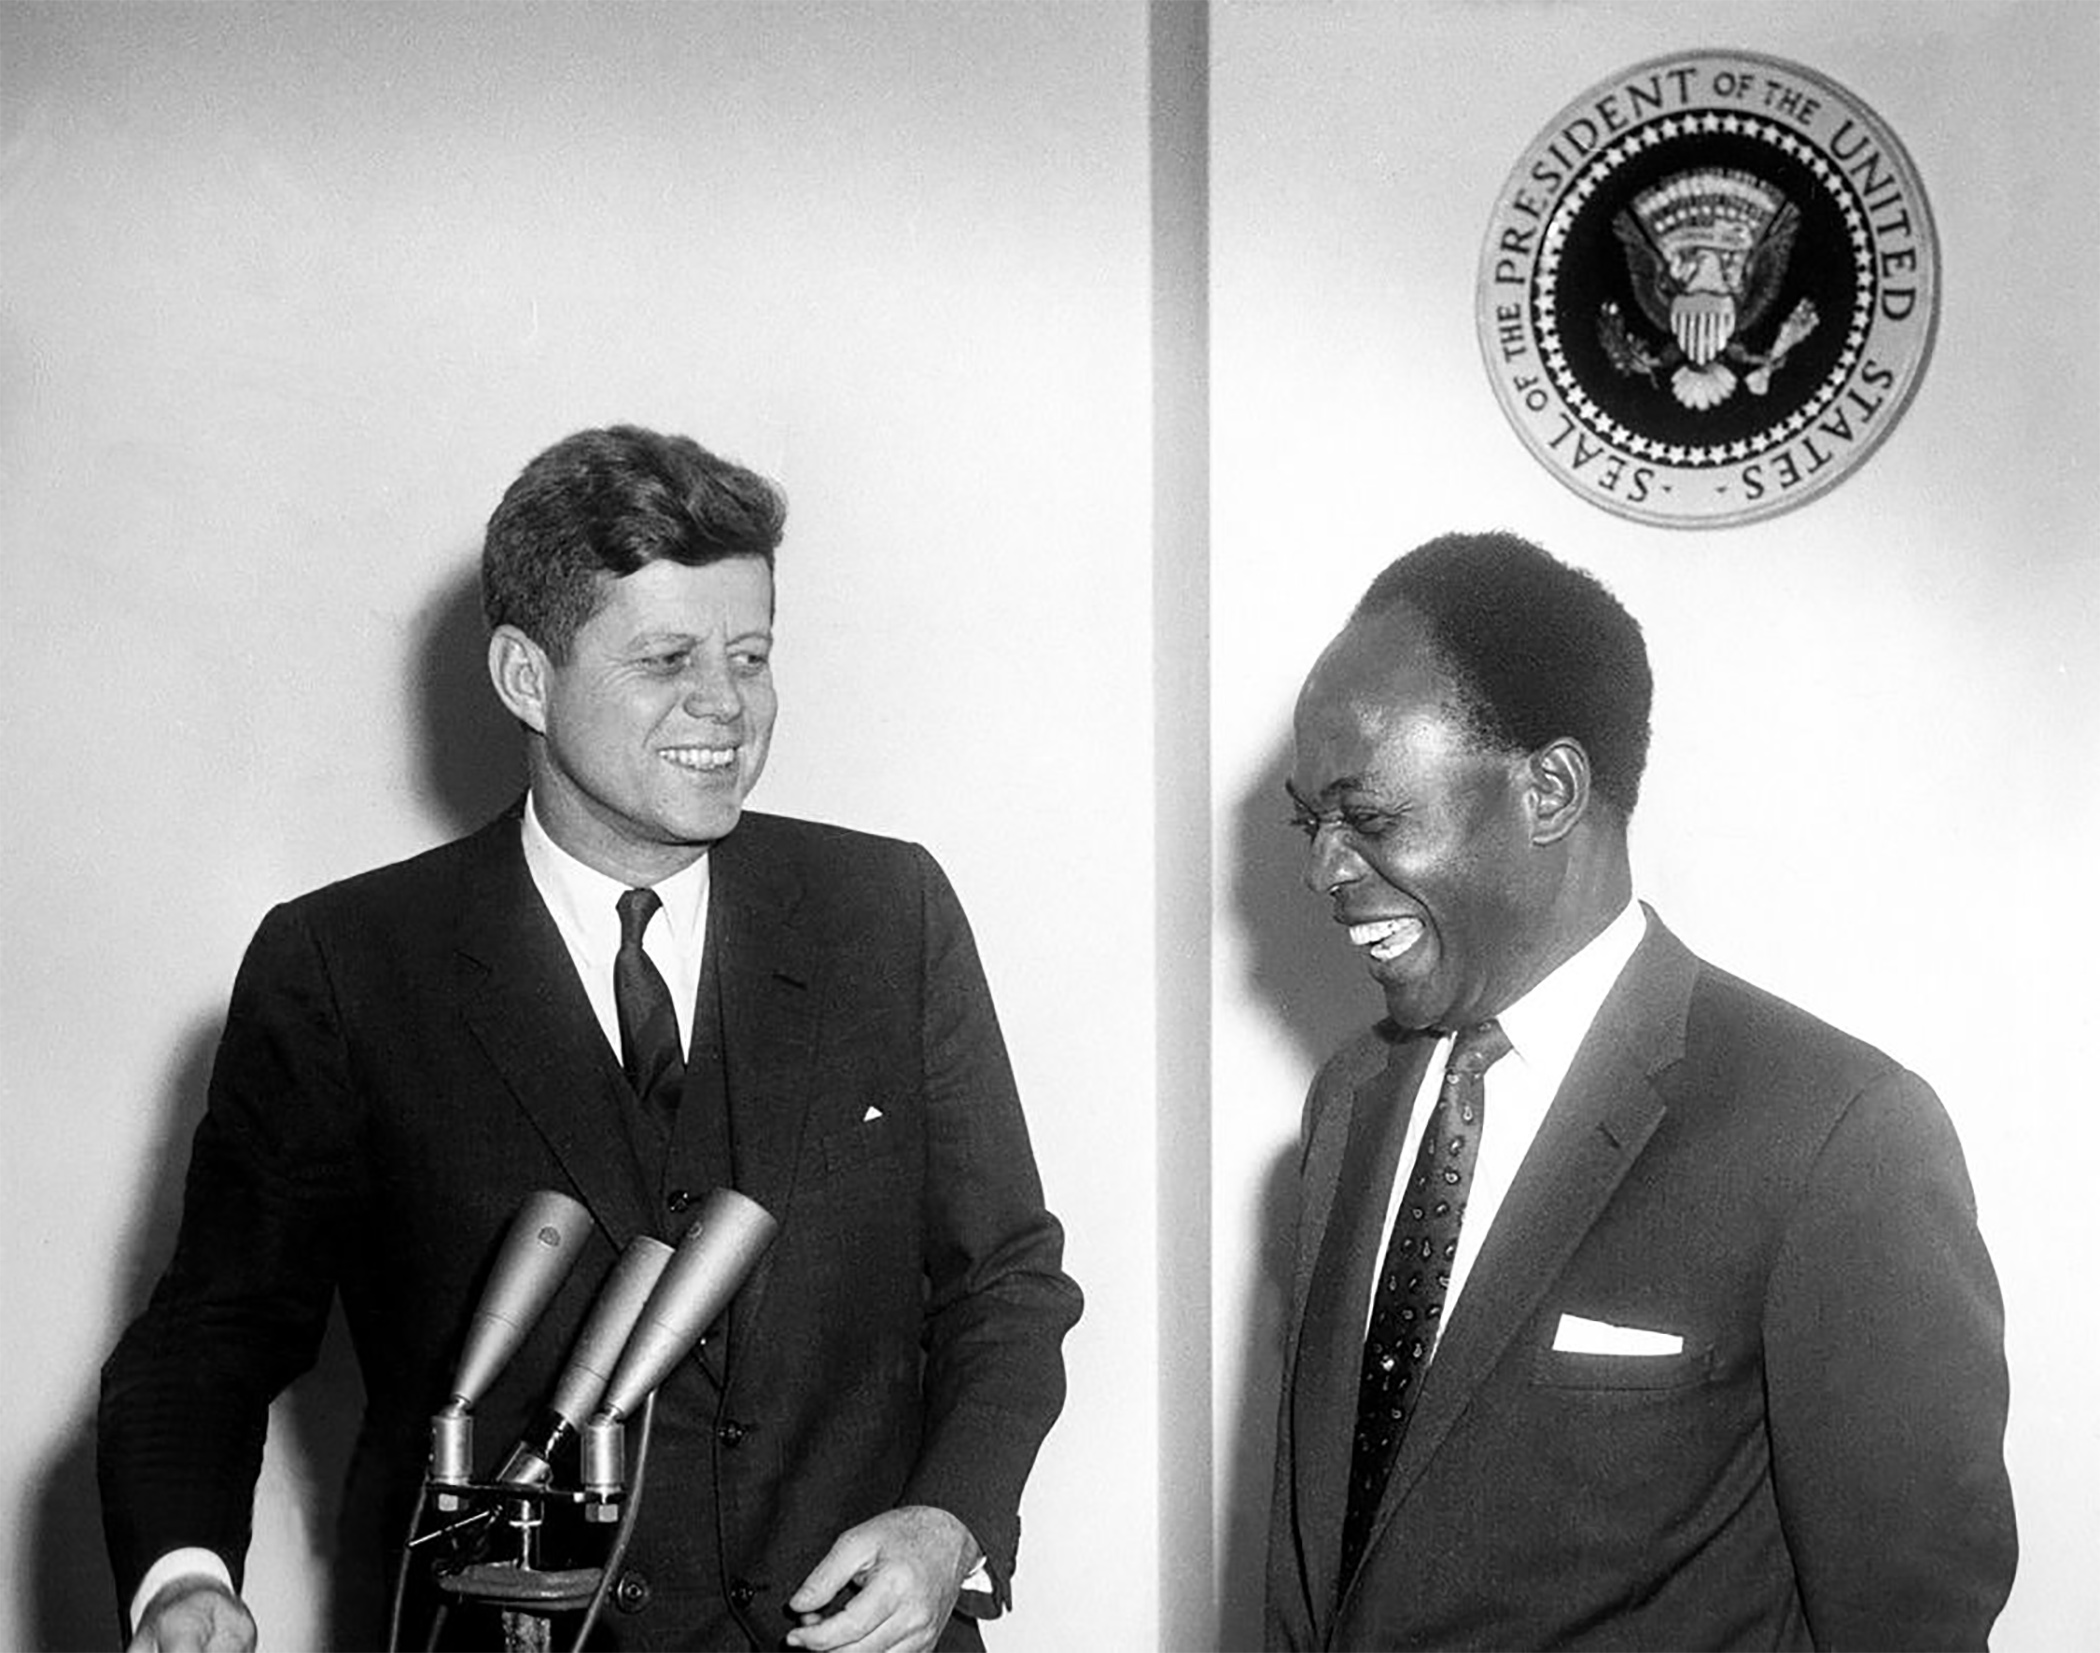 President Kwame Nkrumah of Ghana, a critic of Western influence over his country, meets with US President John F Kennedy. There may have been smiles all around but Nkrumah's cards were marked.